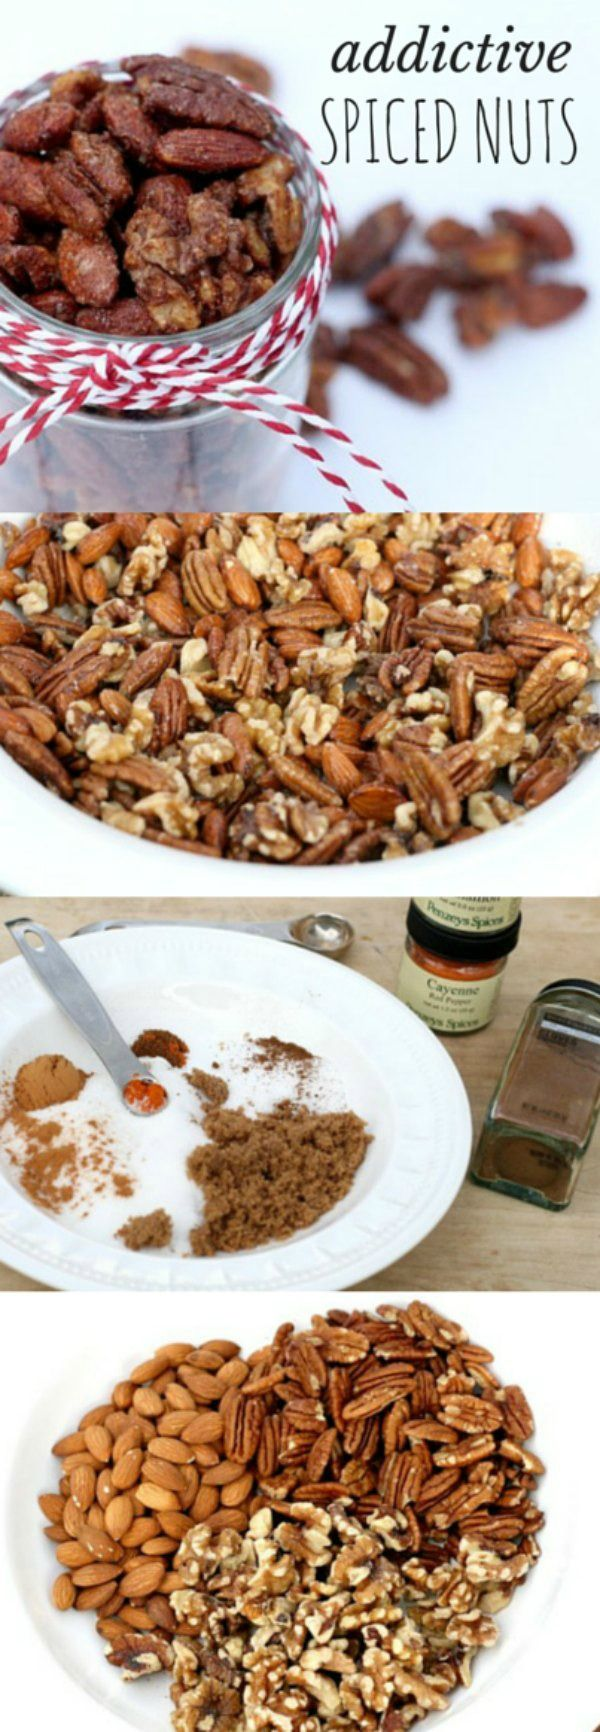 This wonderful spiced nuts recipe has all the holiday flavor but only half the sugar. This is any easy technique, so simple even the kids can make them. Also good for holiday gift-giving. But keep them on a high shelf because they're totally addictive!